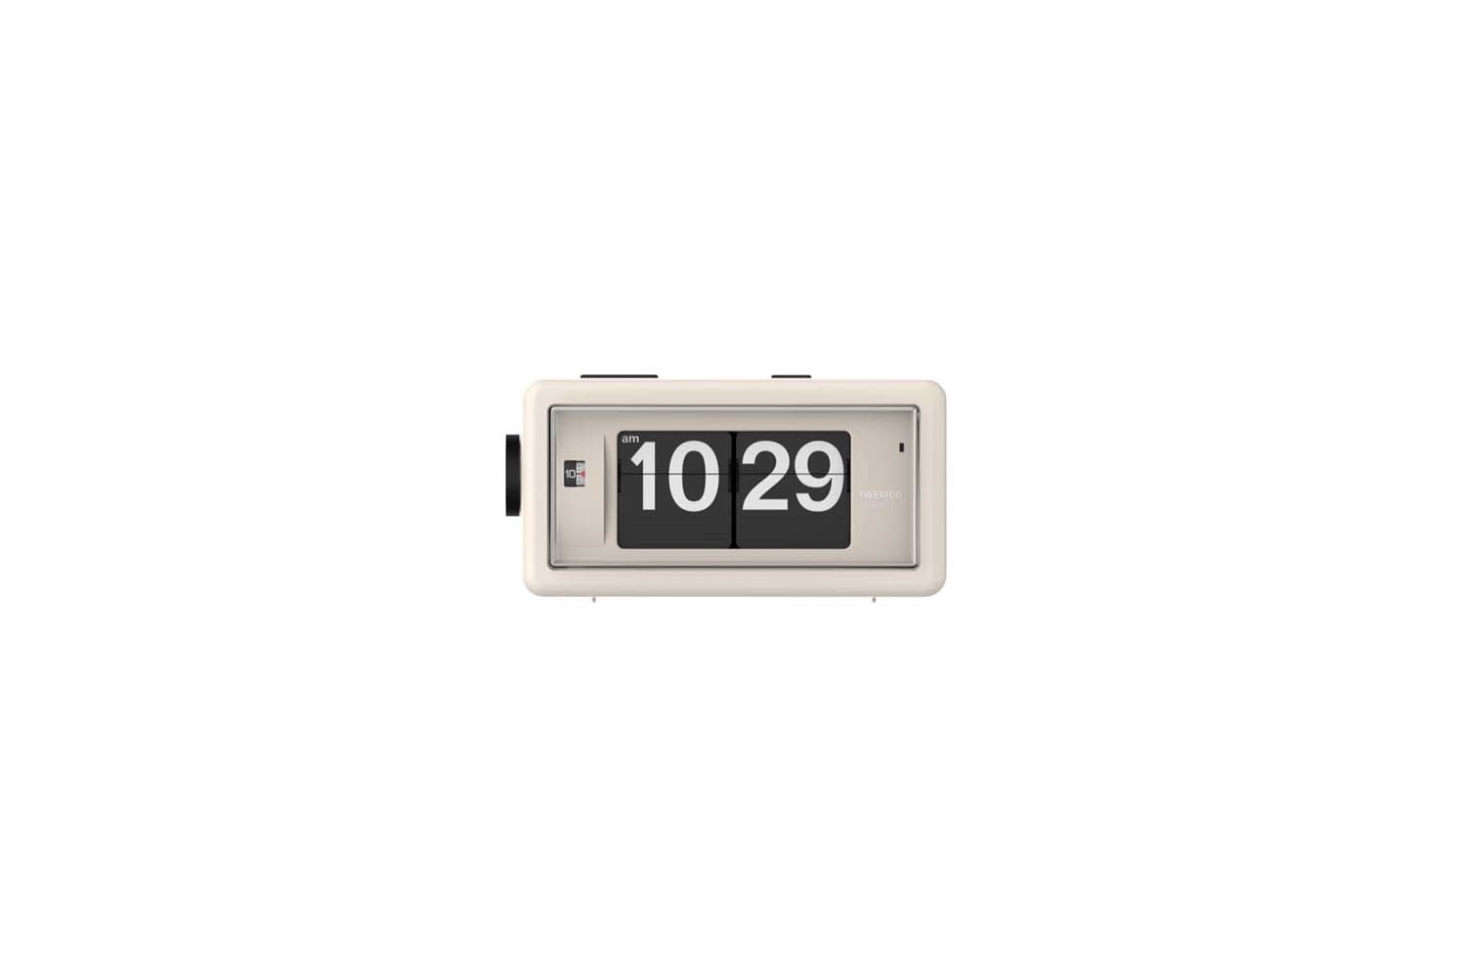 Again, a flip clock from TWEMCO, but with a more simplified design. The Alarm Flip Clock AL-30 comes in seven different colors including Beige (shown) for $9 at Time Will Flip.